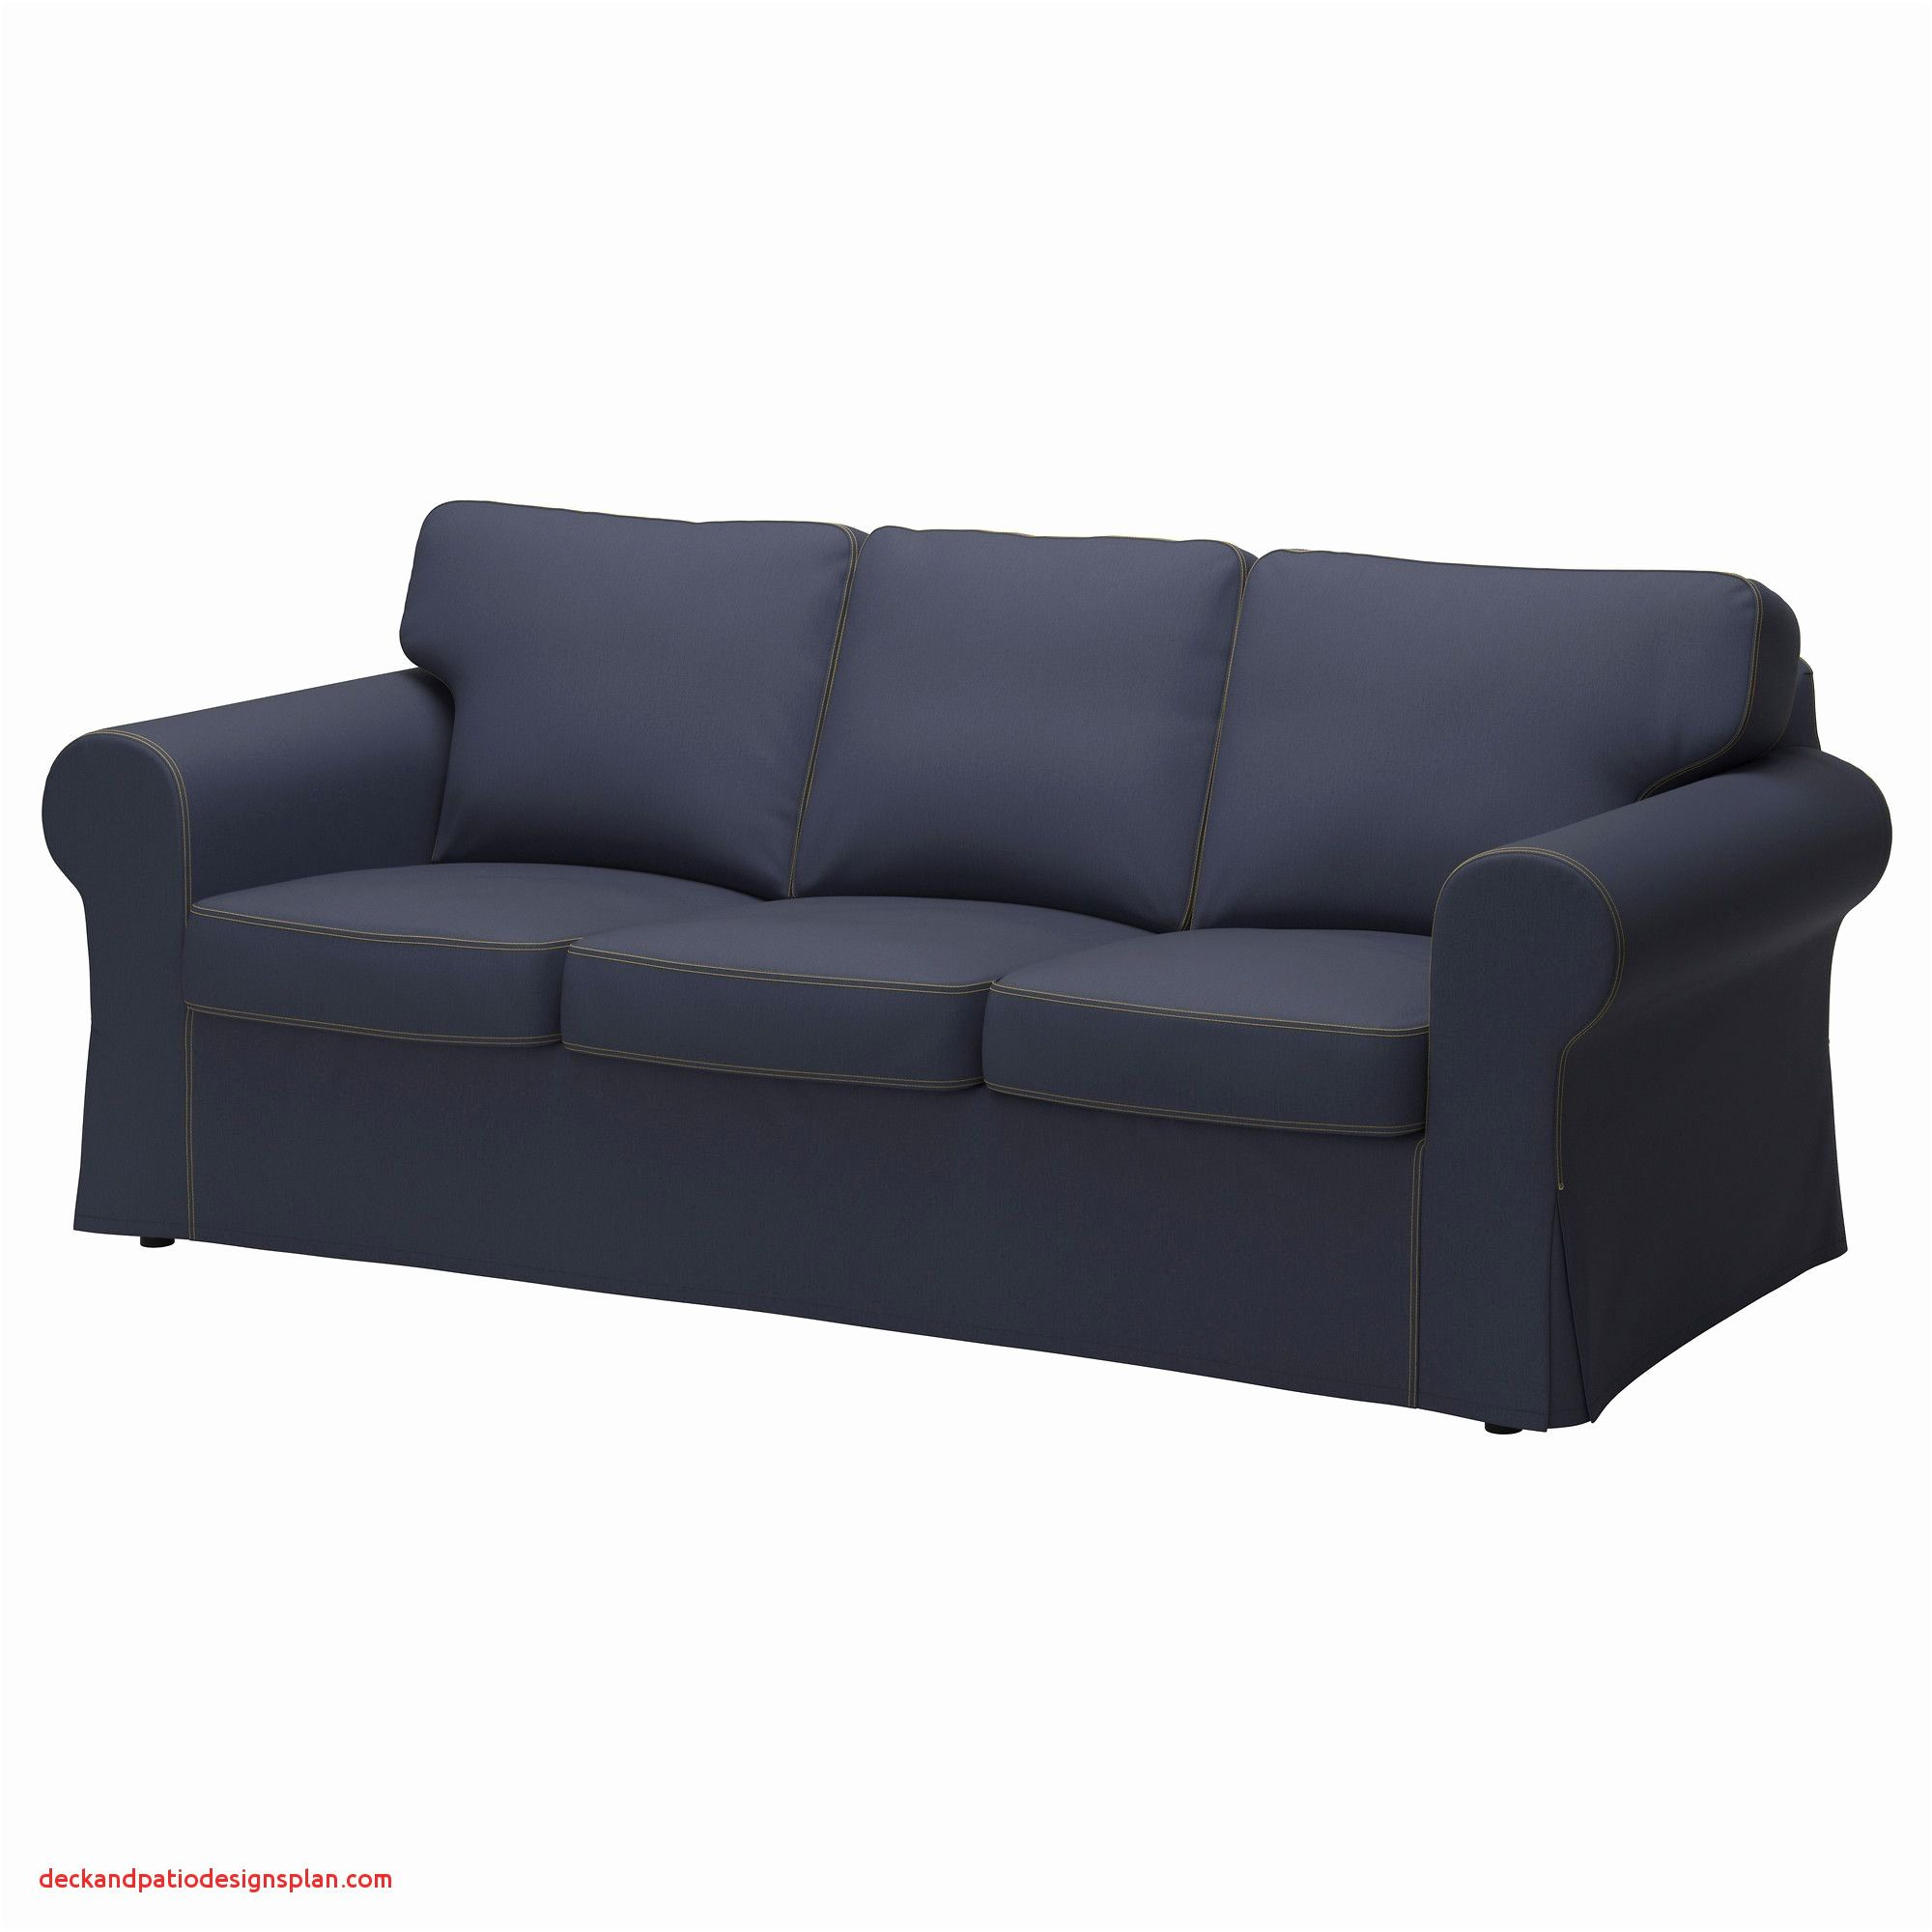 Skurril Couch 3er